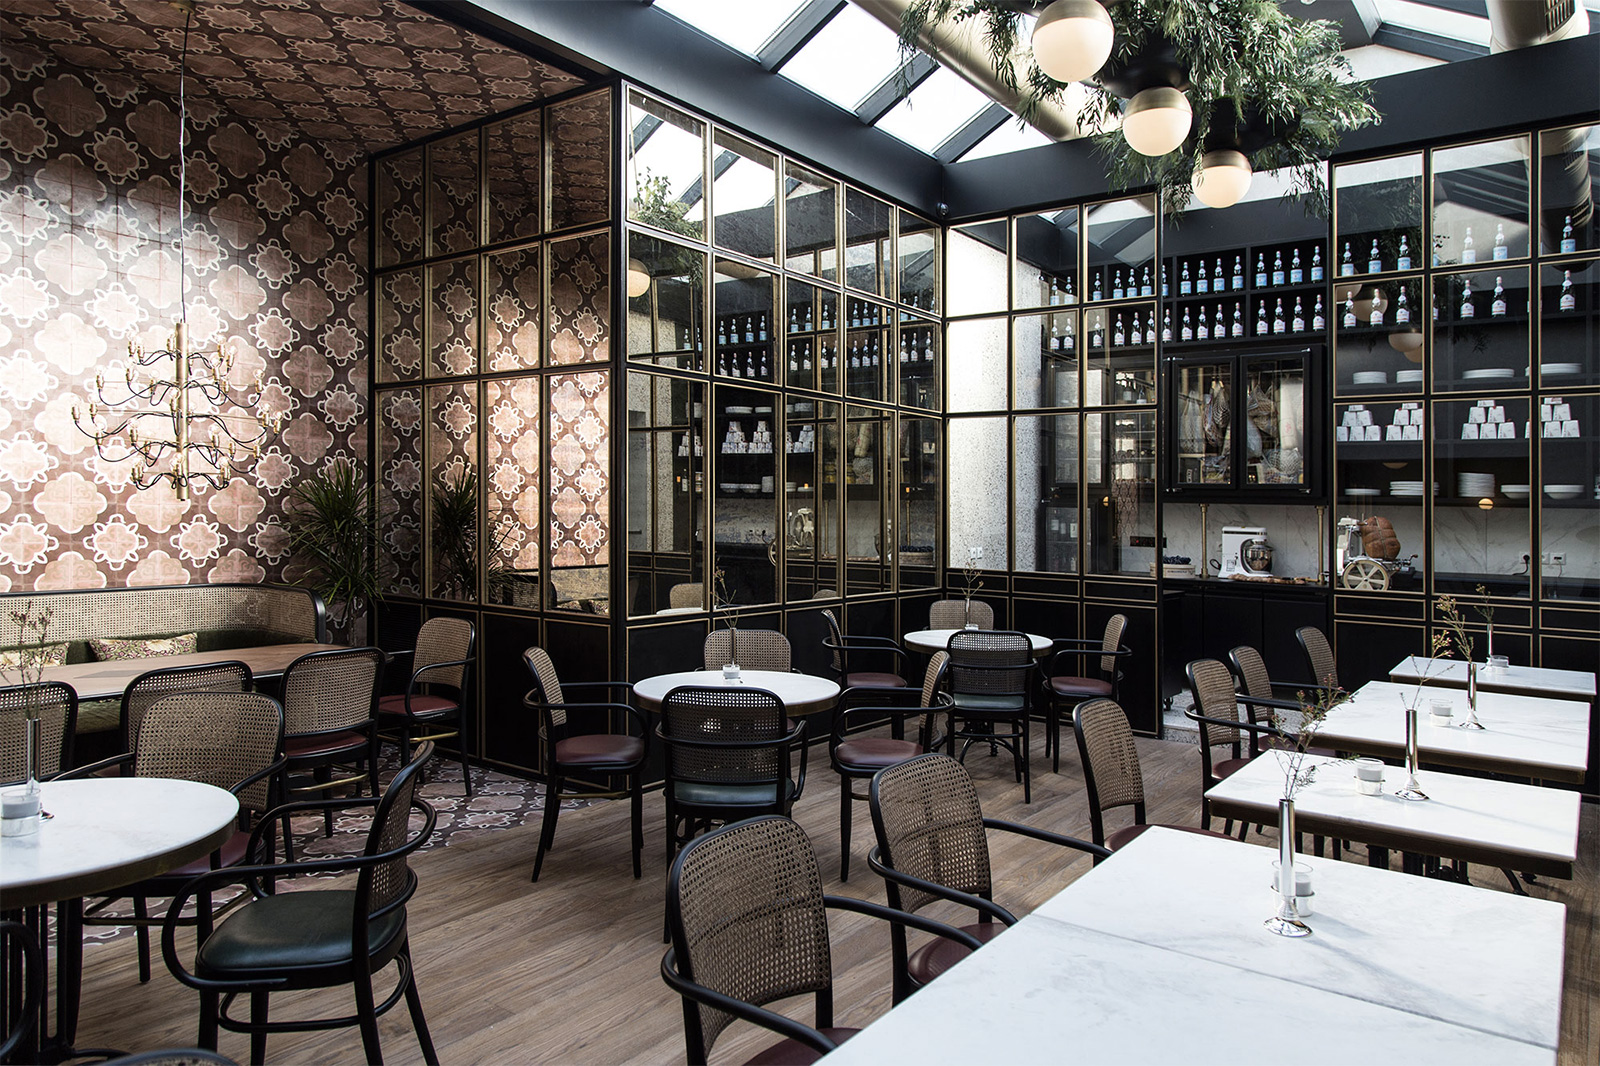 Minos Kosmidis designed the interiors for new Athens bar and restaurant Papillon